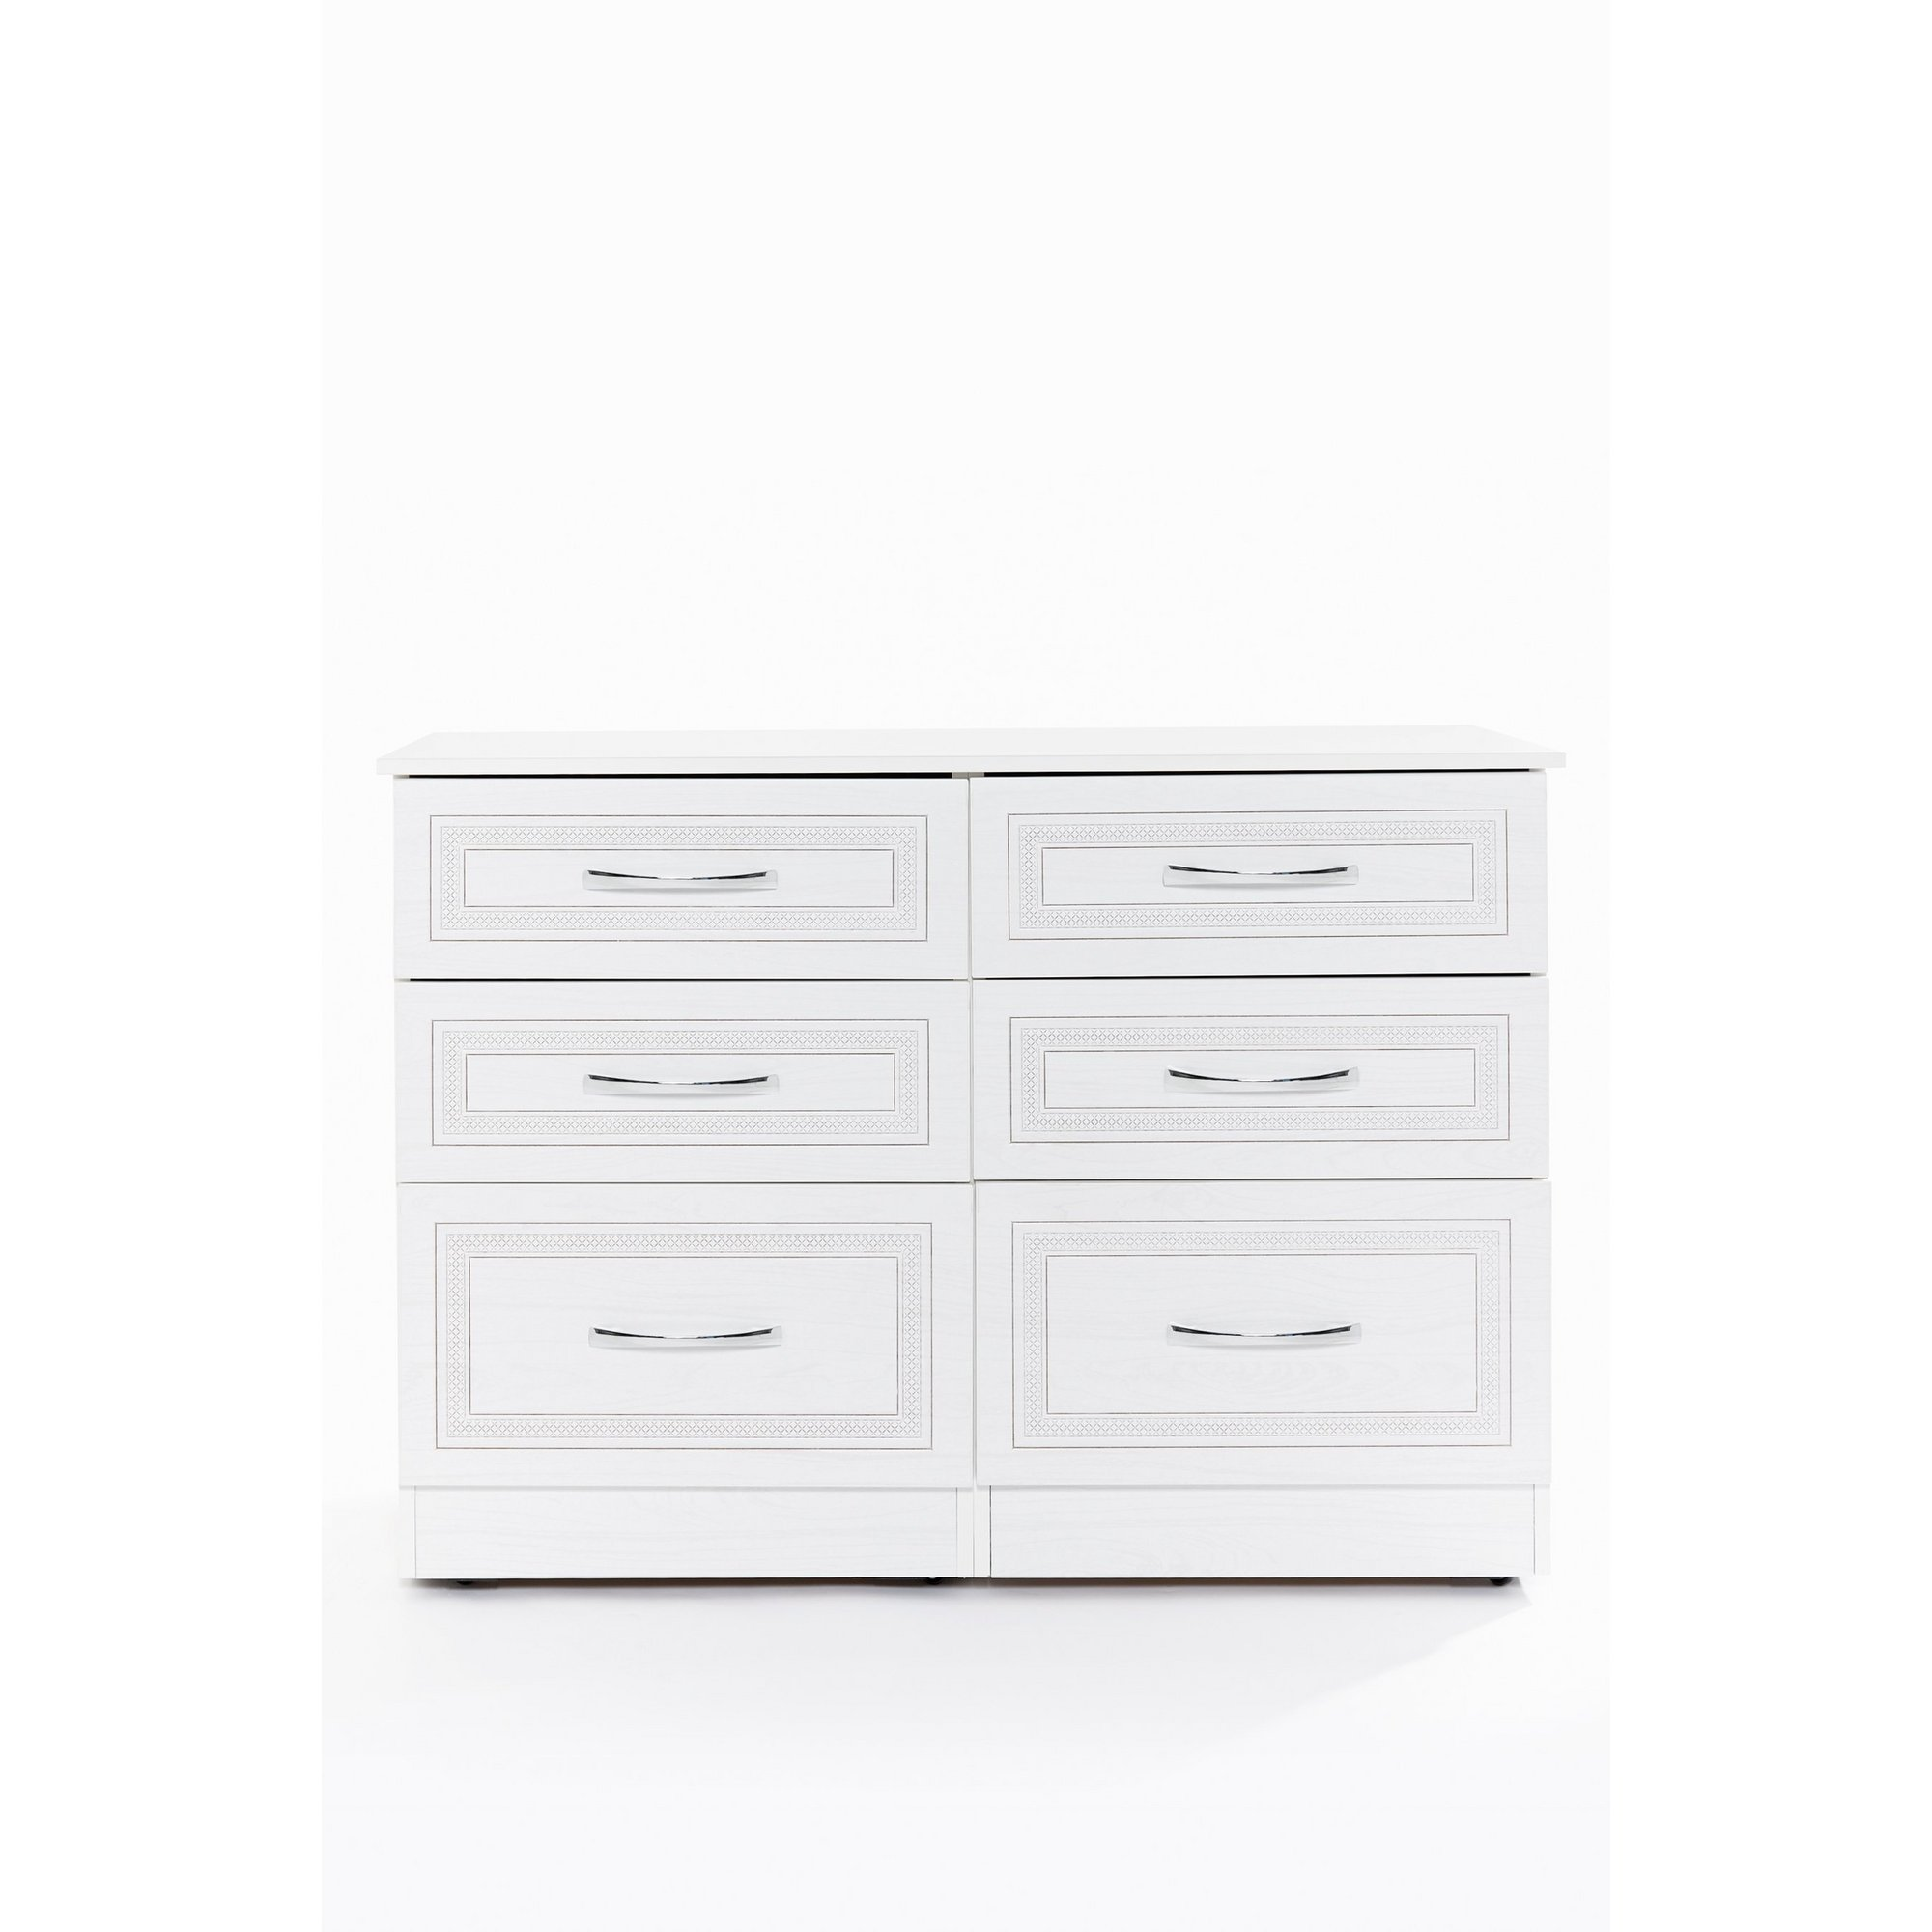 Image of Dorset 6 Drawer Ready Assembled Chest of Drawers